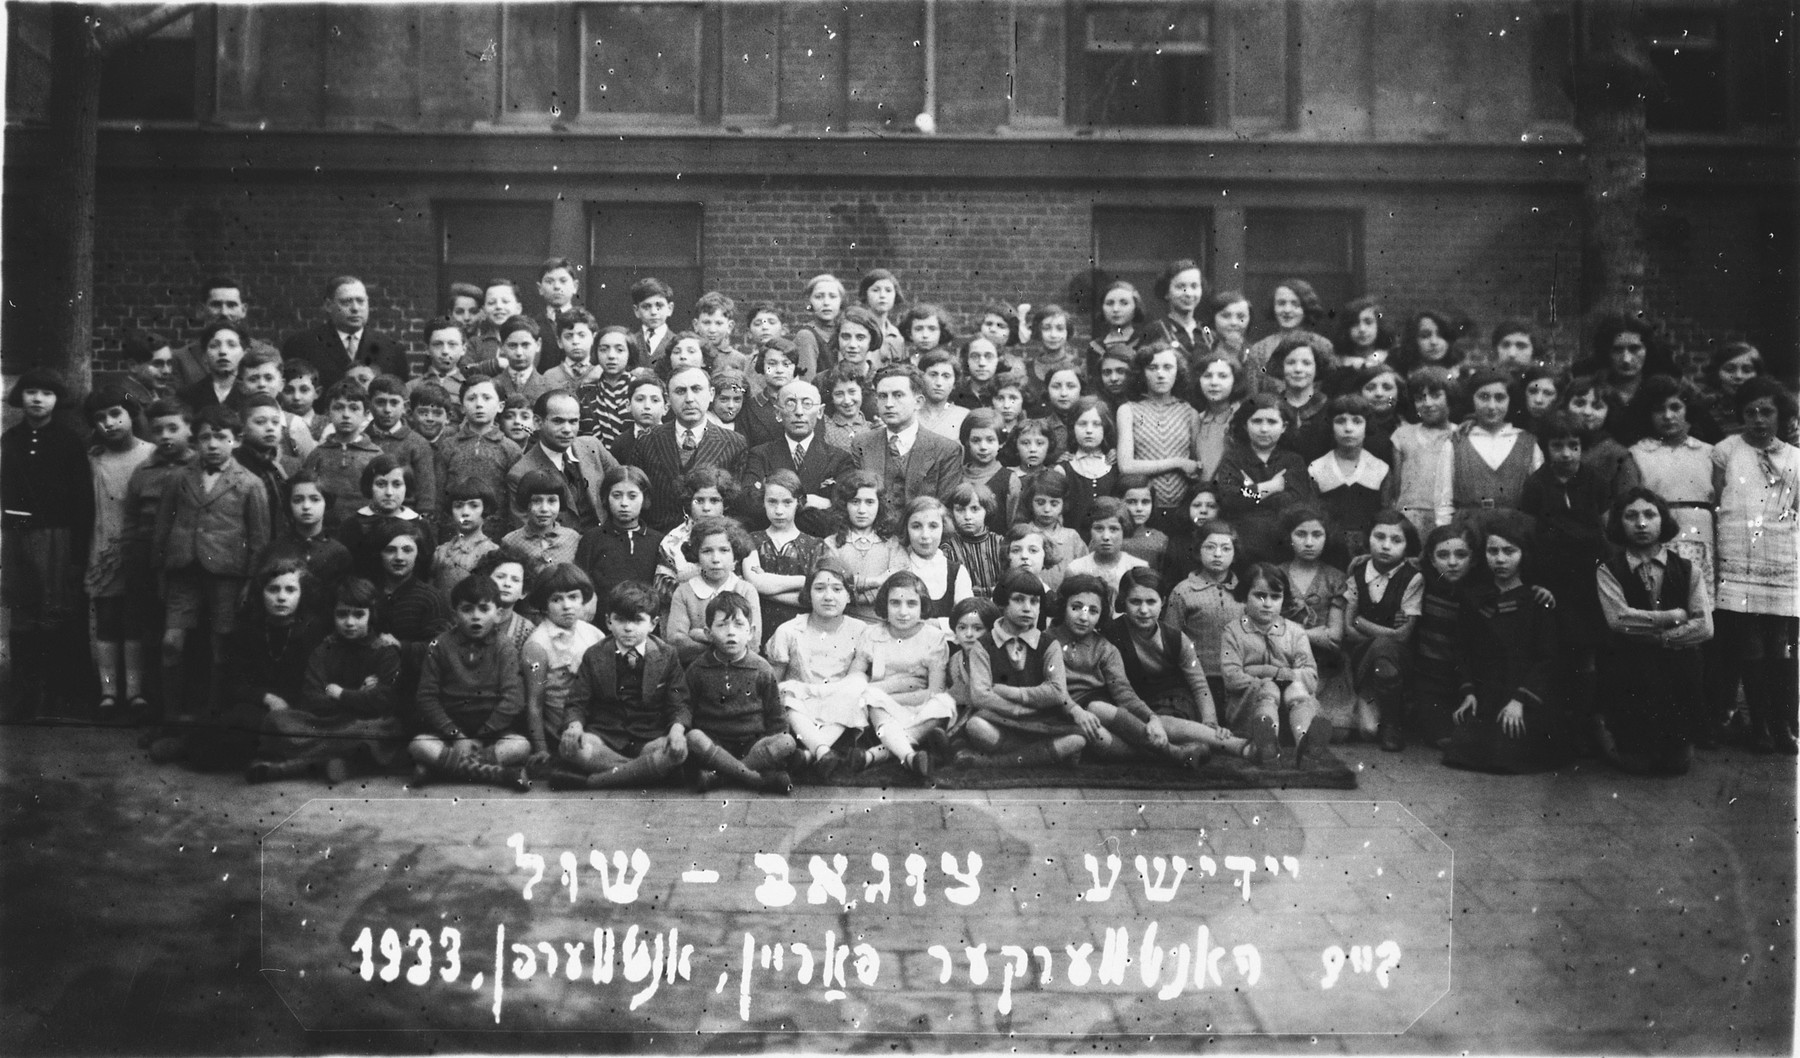 Group portrait of the children and faculty of the Yiddish Tsugob shul, sponsored by the Jewish Artisan Association.  Among those pictured is Paula Lasman (second row, far left), Mr. Schwartz (in the group of men in the center, far left), Mr. Lubka (back row, far left).  Both men were on the board of the Tsugobshul.